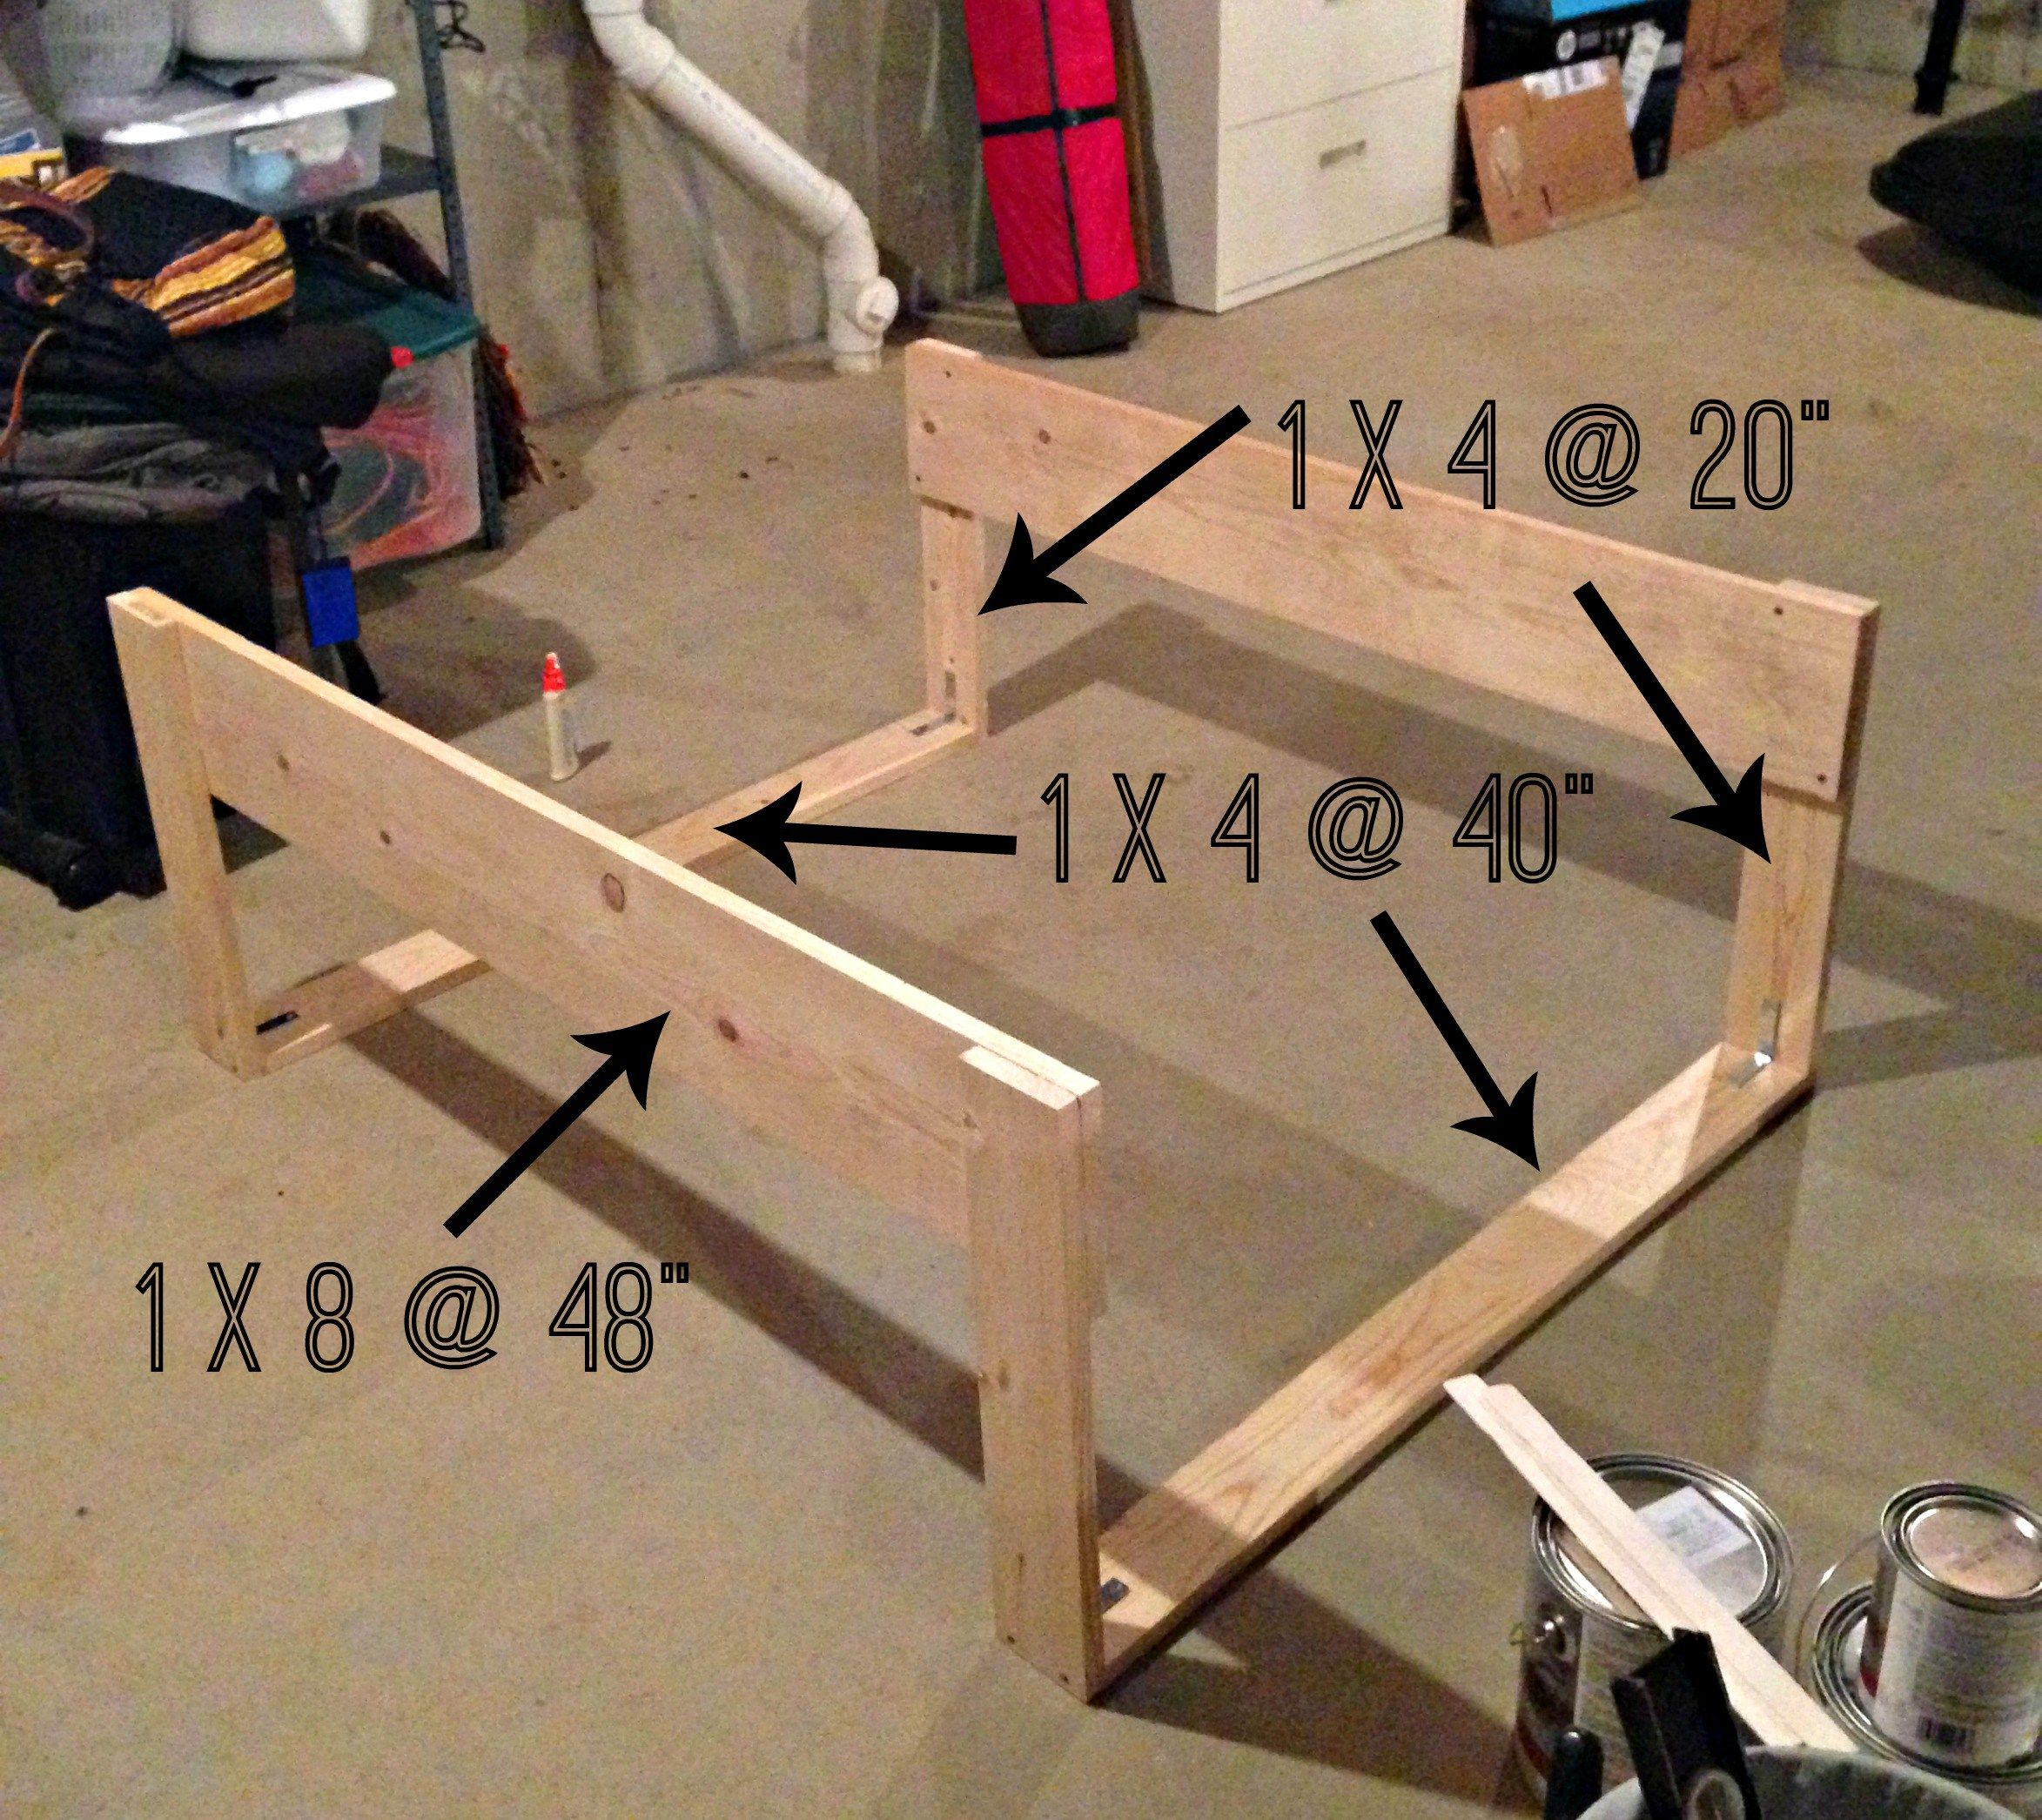 Diy Toddler Bed Rails With Images Diy Toddler Bed Bed Rails